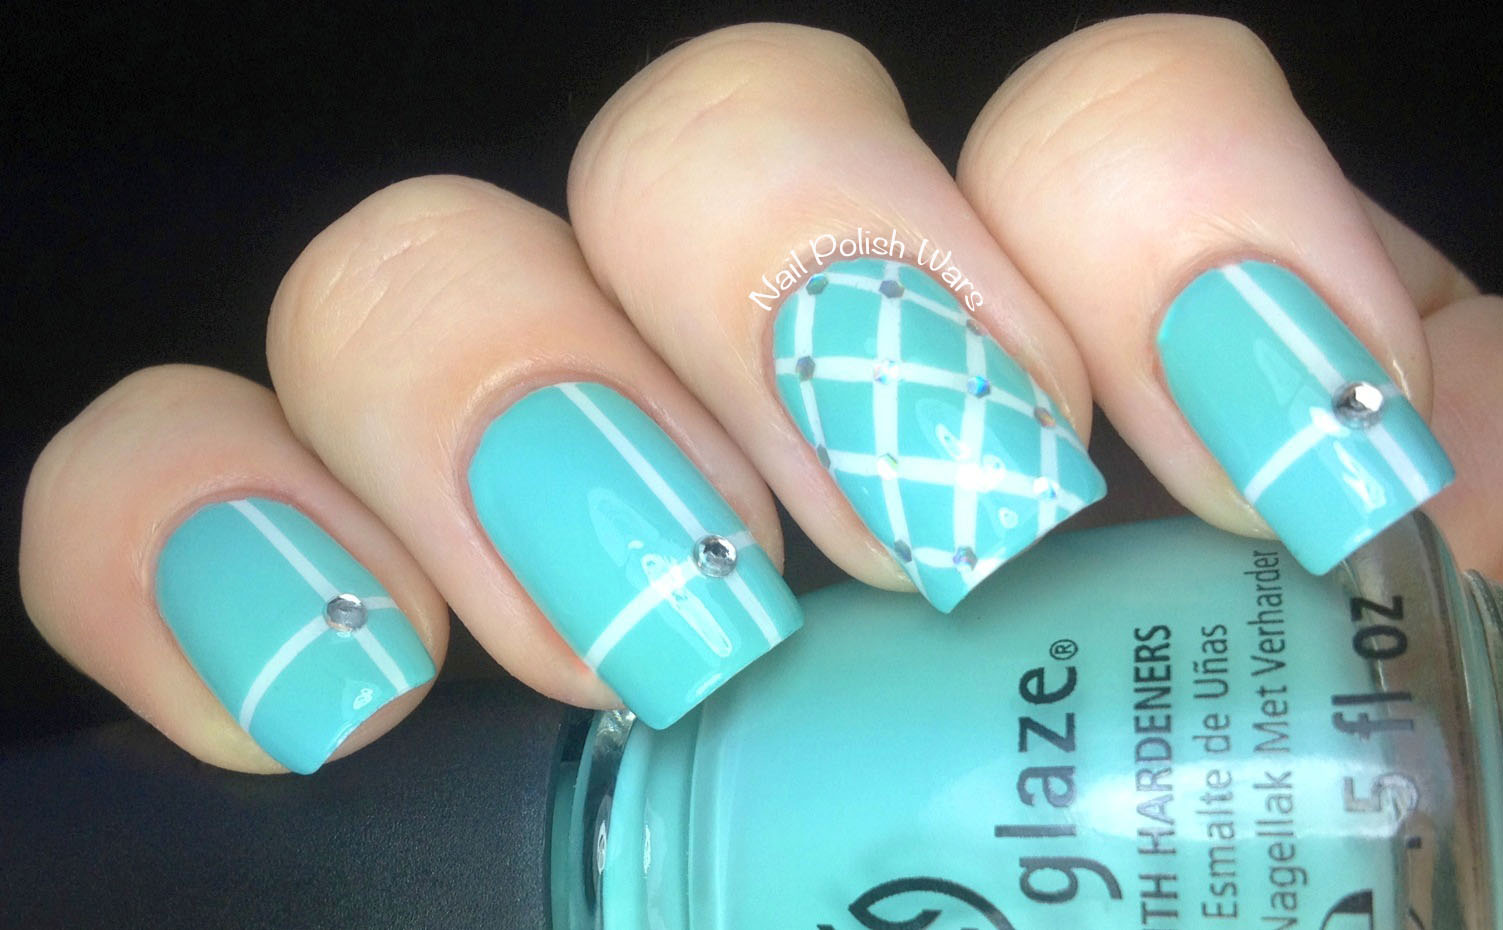 Tiffany and co nail design choice image nail art and nail design tiffany and co nail design images nail art and nail design ideas tiffany and co nail prinsesfo Images